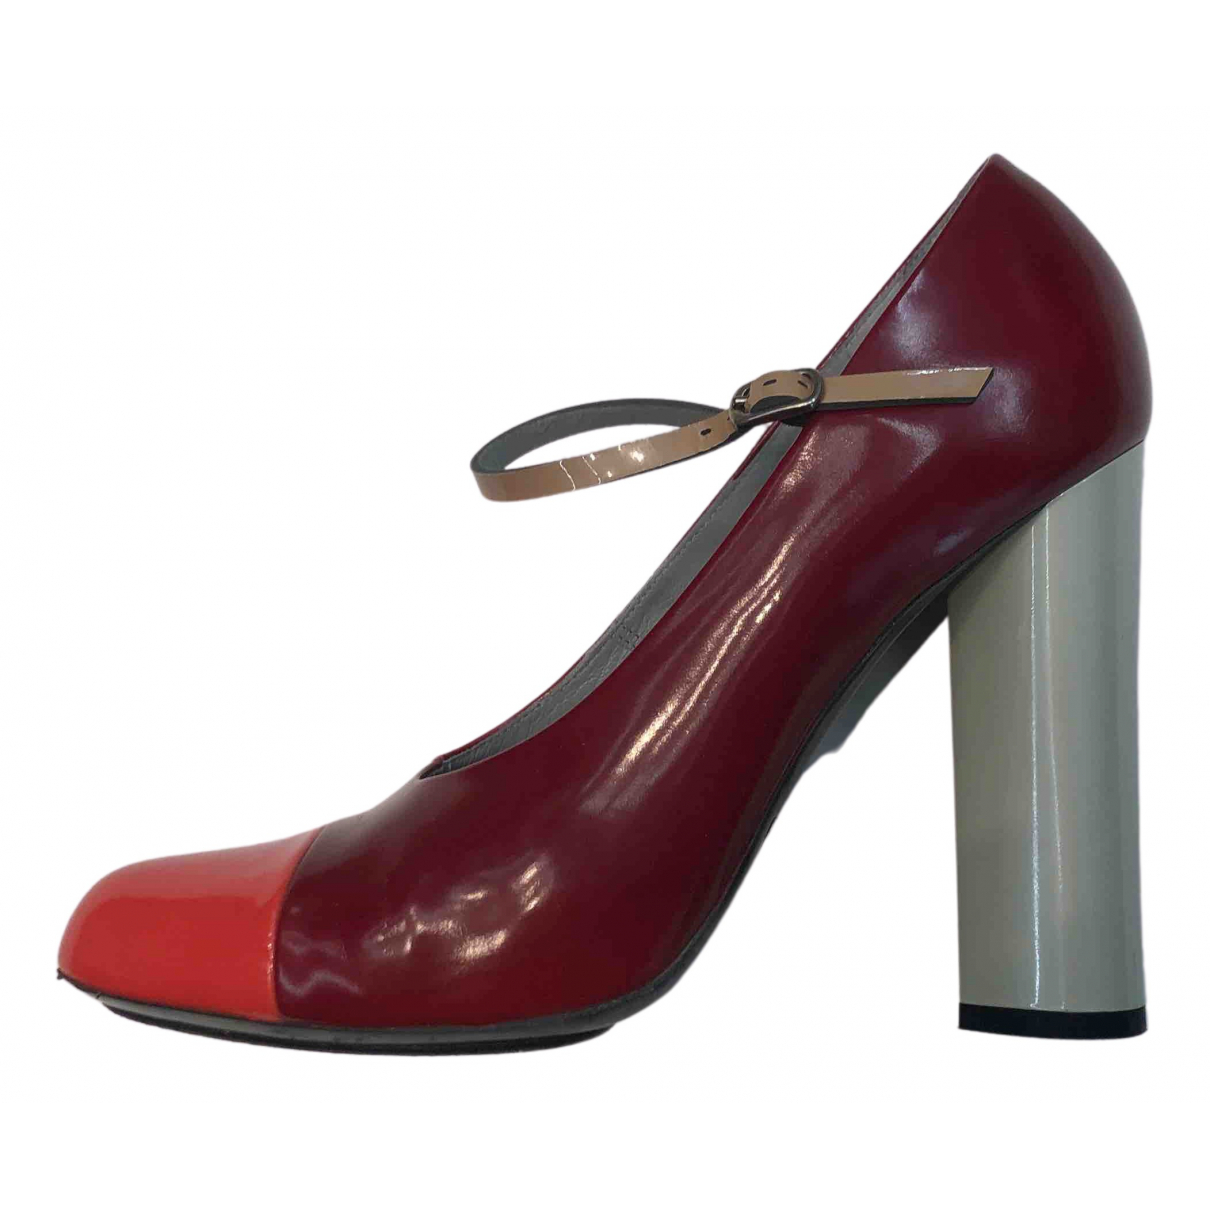 Marc Jacobs N Burgundy Patent leather Heels for Women 38.5 IT